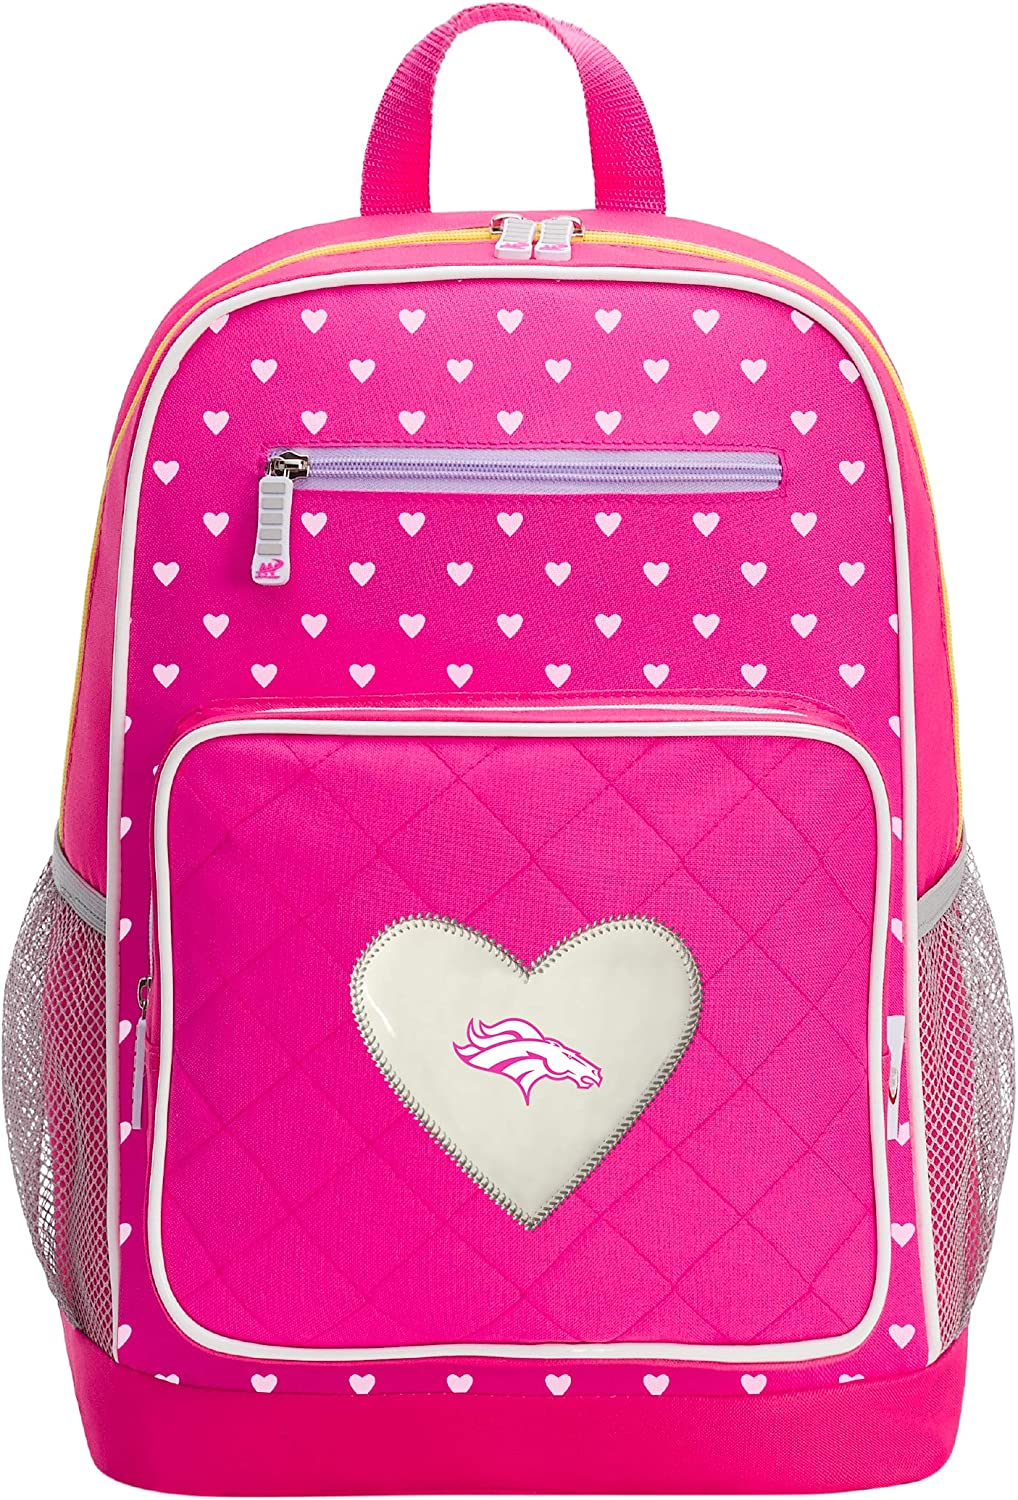 Officially Licensed NFL Fanclub Backpack, Pink, 18  x 5  x 13